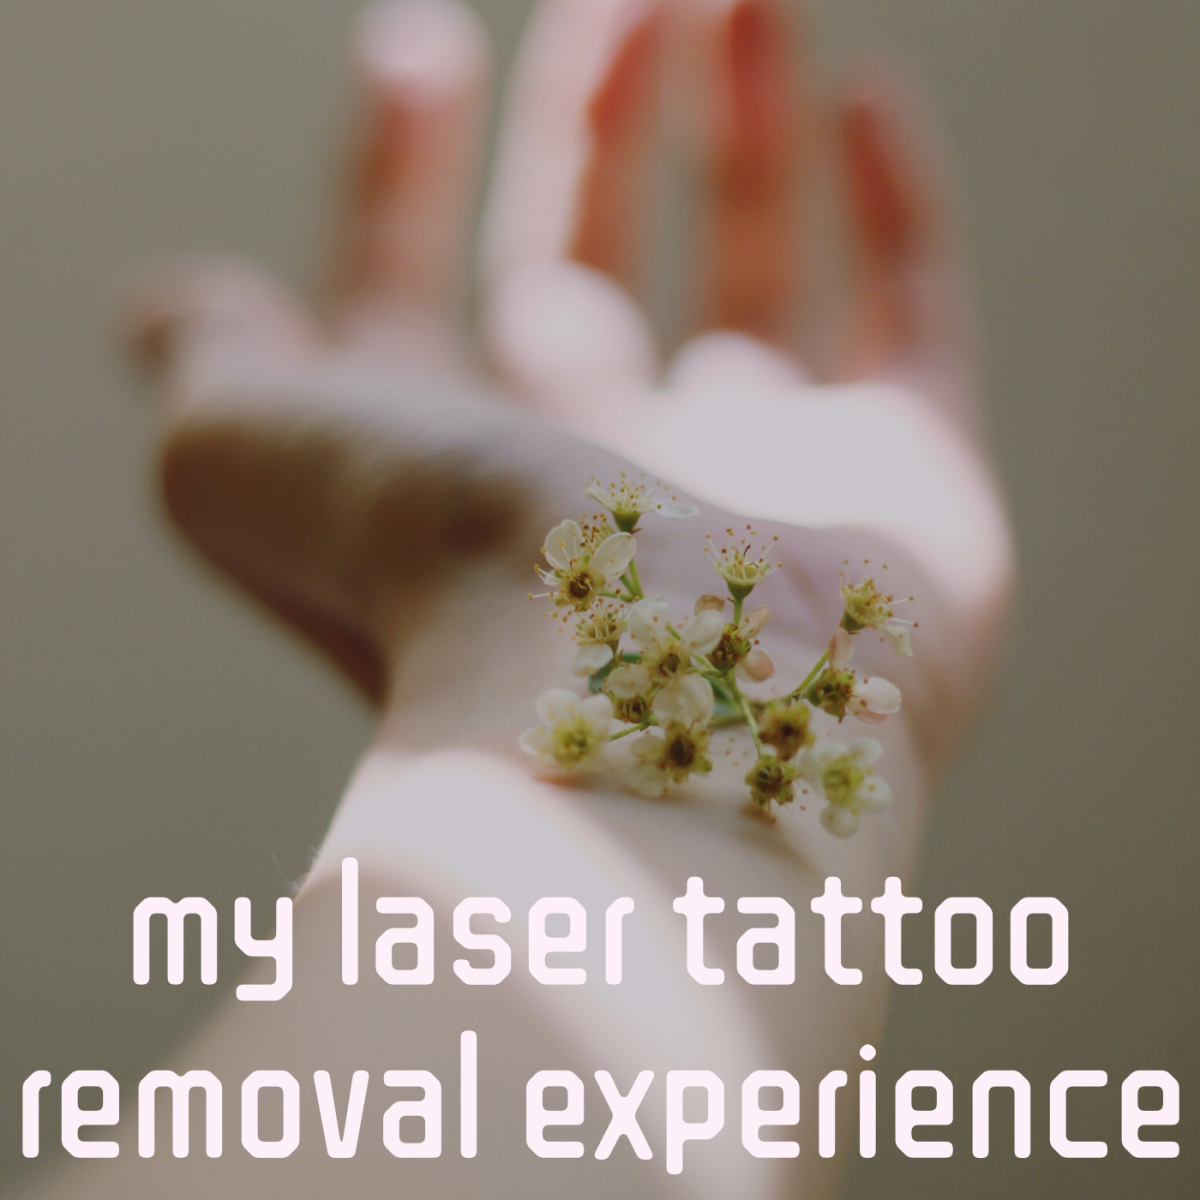 Undoing Ink: My Decision to Do Laser Tattoo Removal